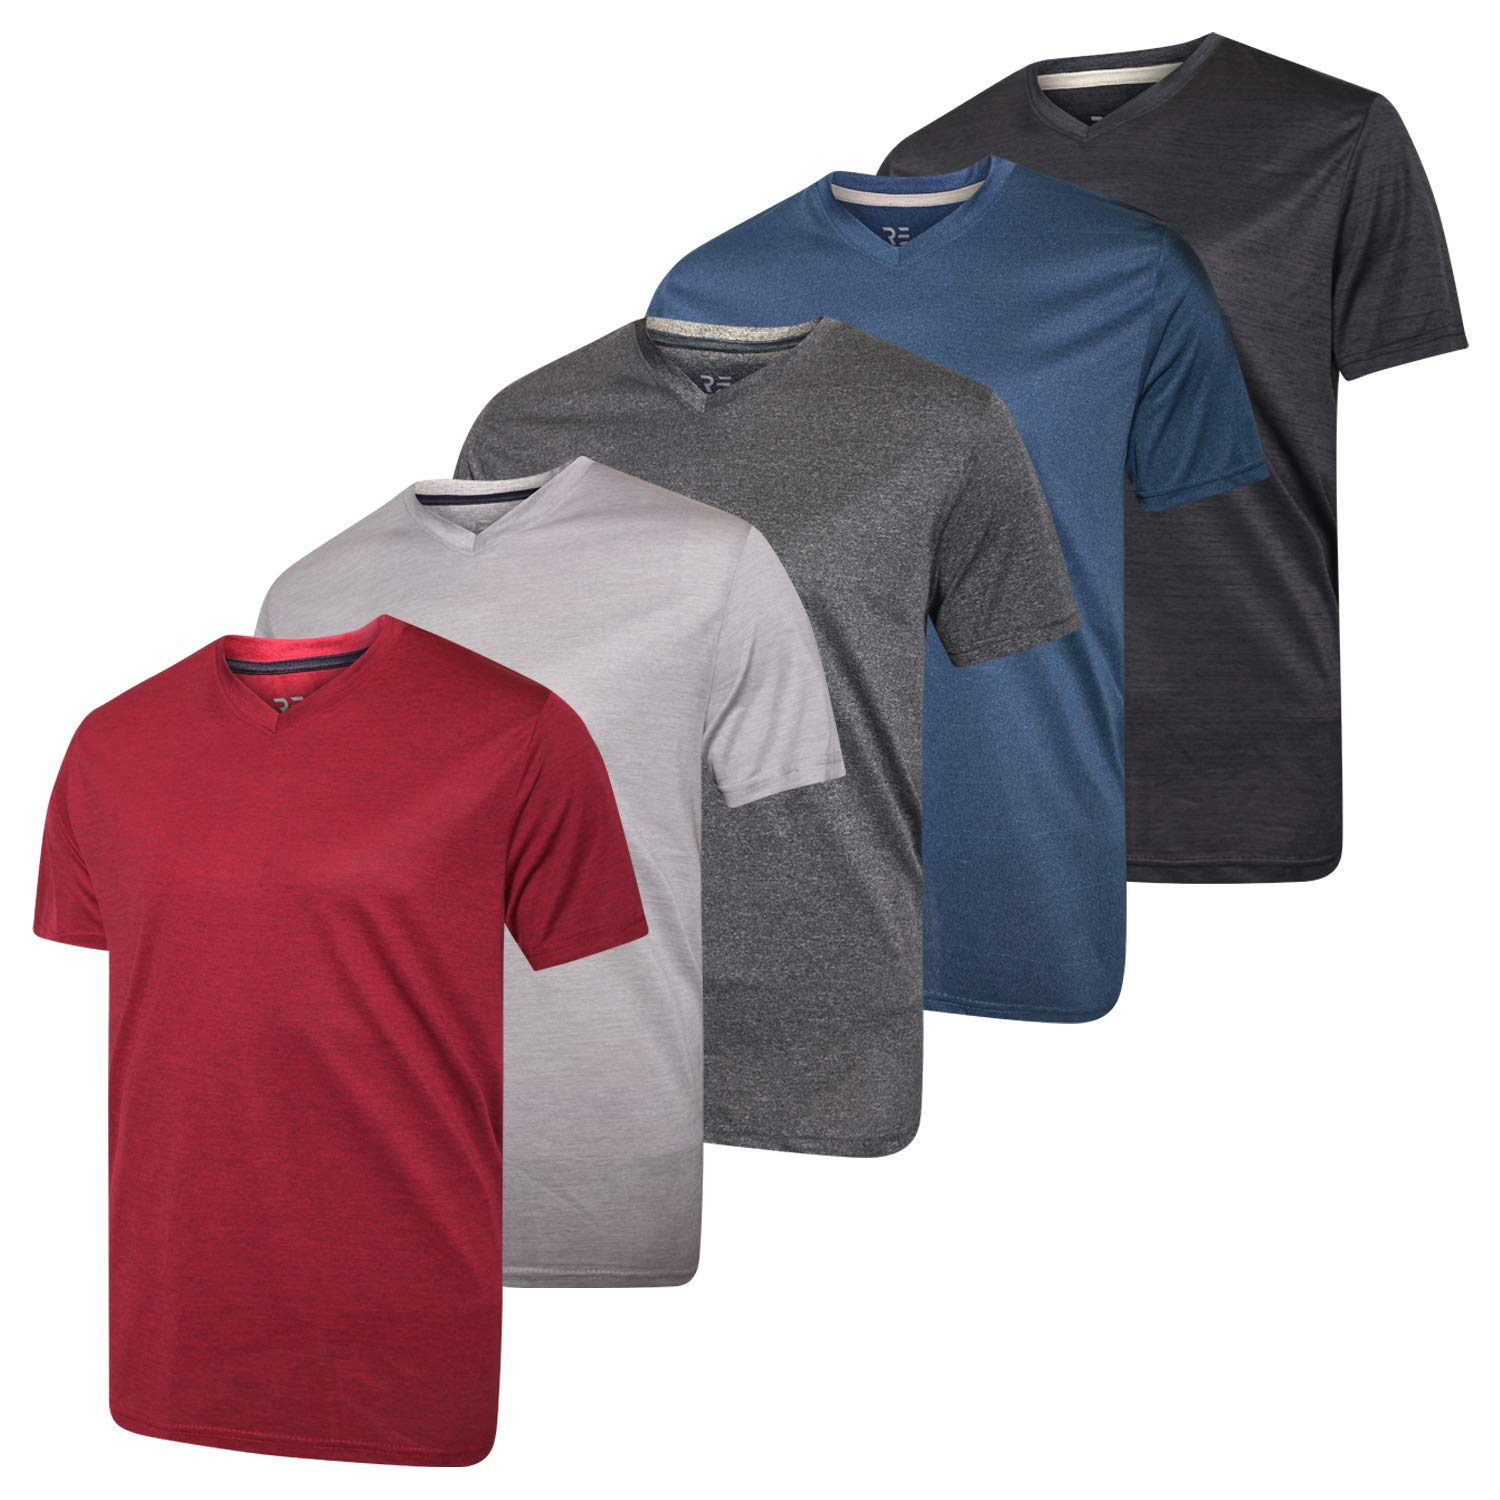 5 Pack:Men's V Neck Quick Dry Fit Dri-Fit Short Sleeve Active Wear Training Athletic Essentials T-Shirt Tee Fitness Gym Workout Undershirt Top-Set 2,L by Real Essentials